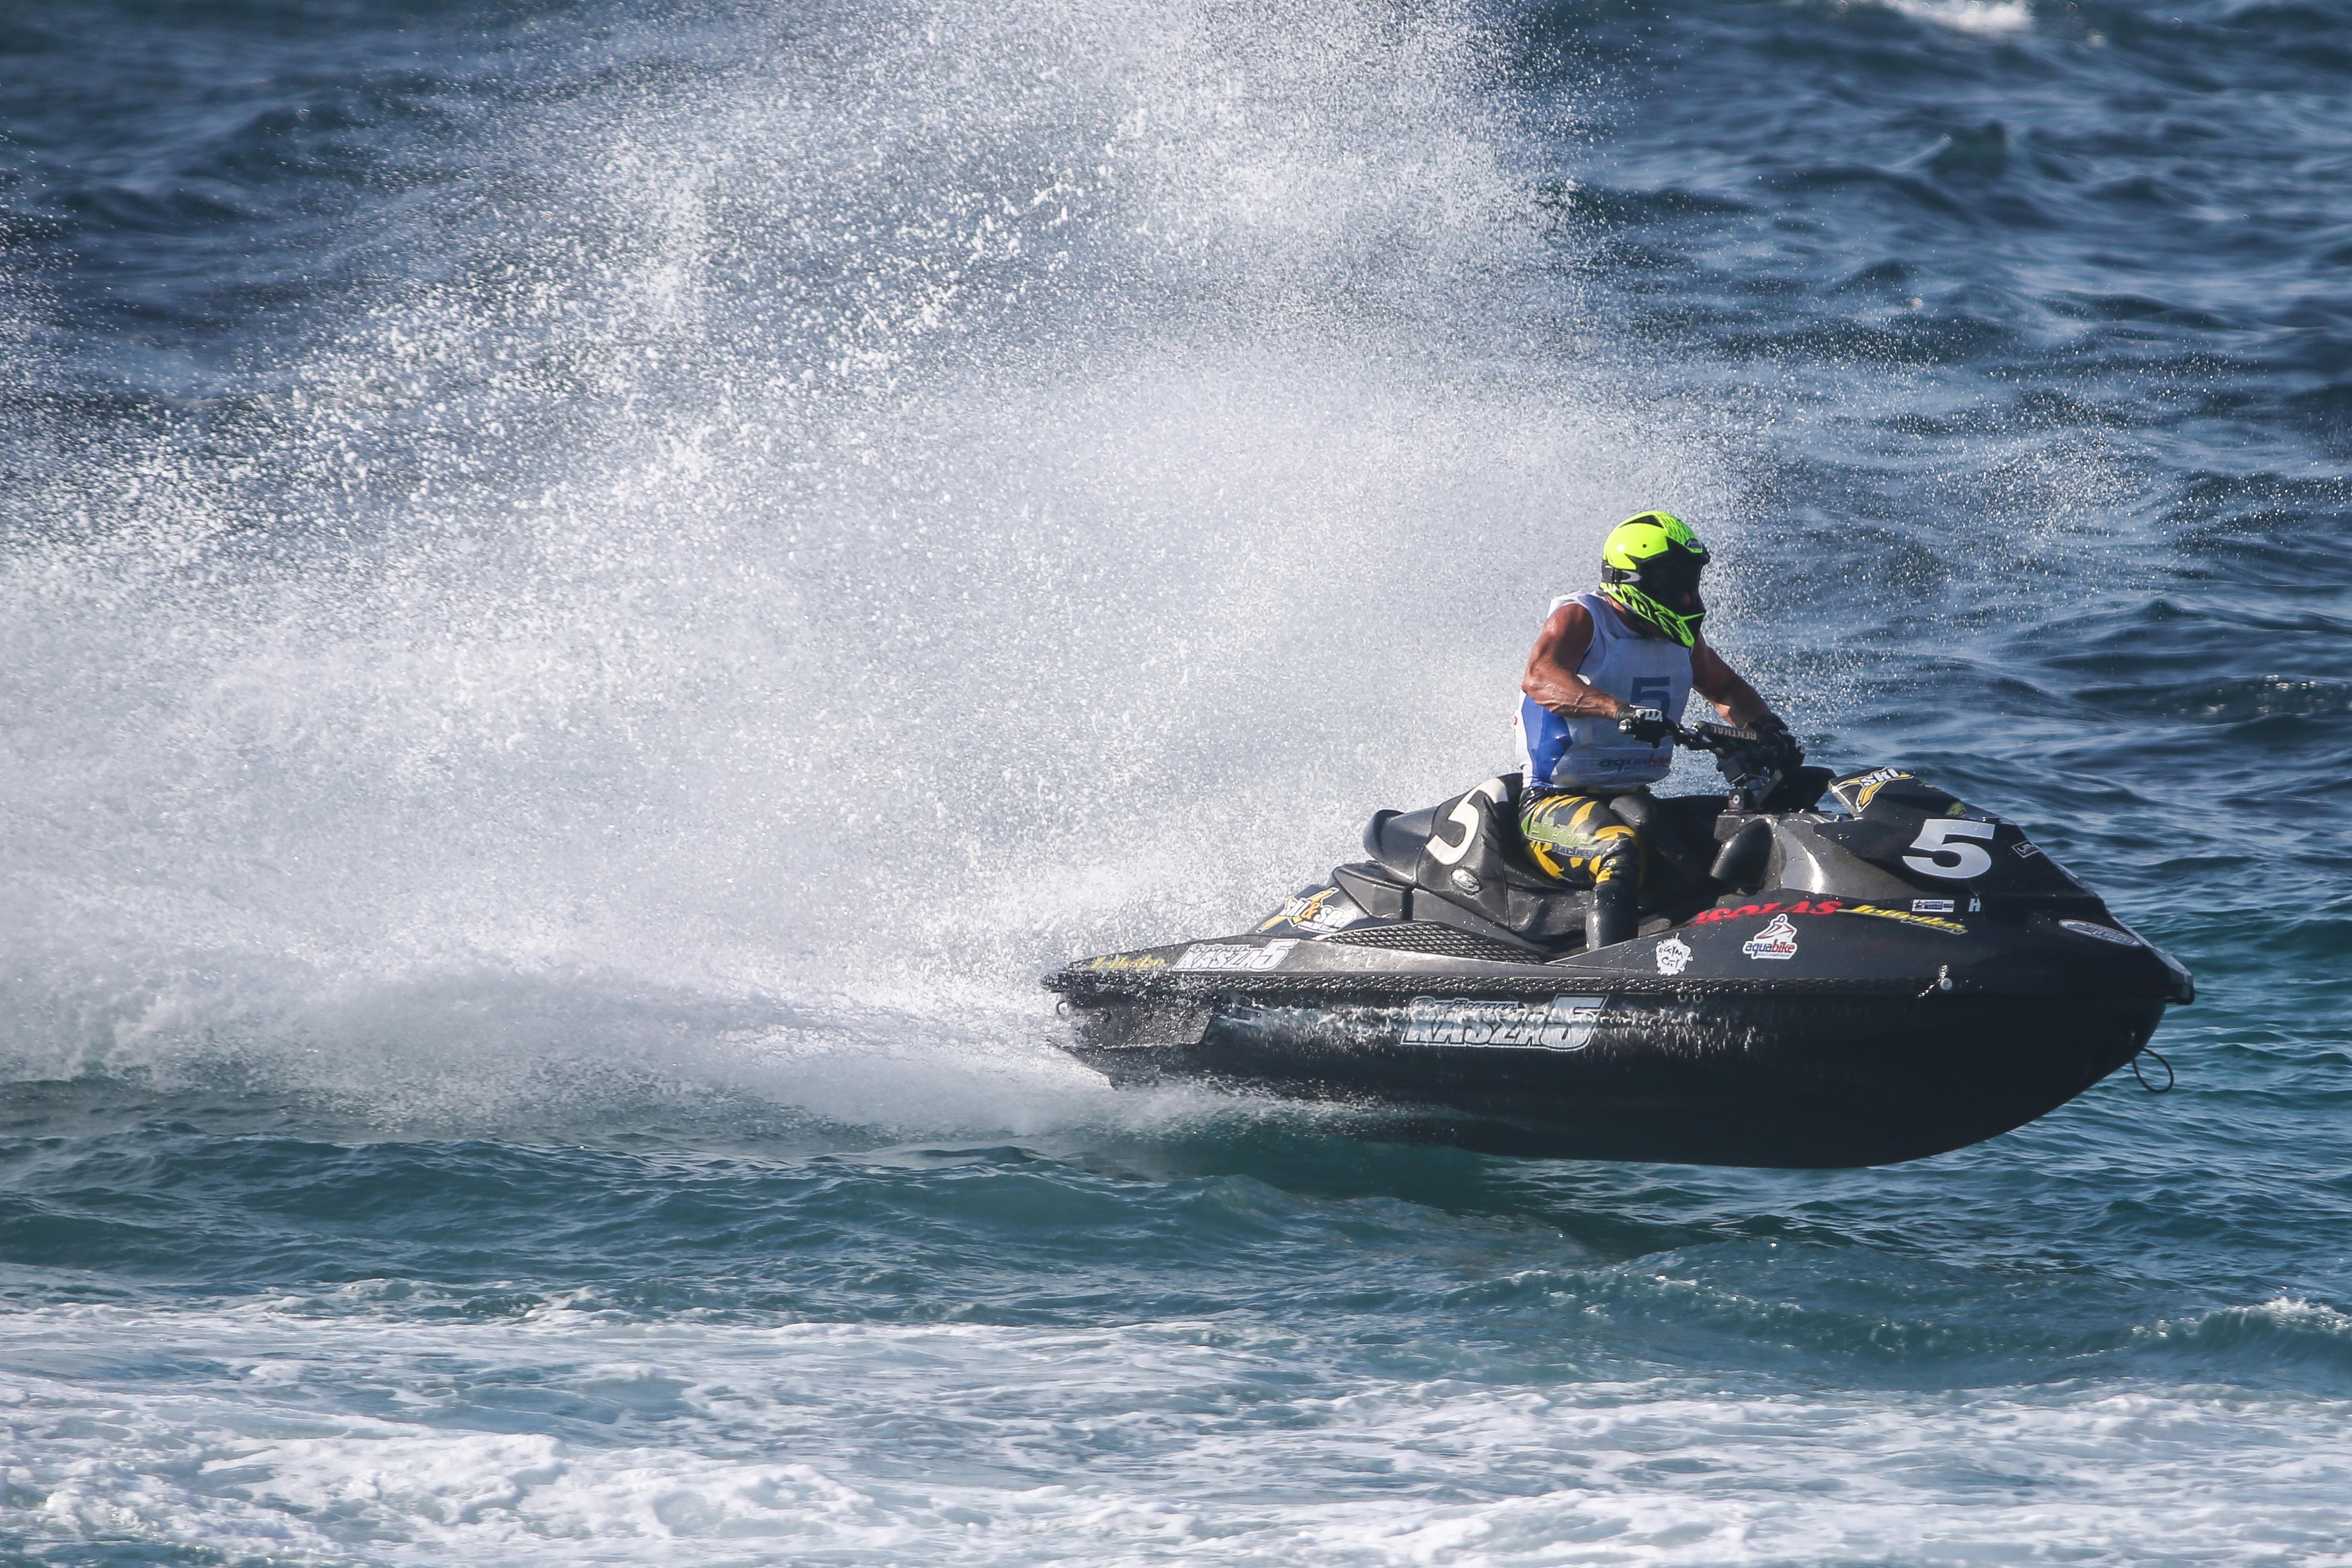 GYORGY KASZA HOLDS ON TO TAKE VICTORY IN RUNABOUT